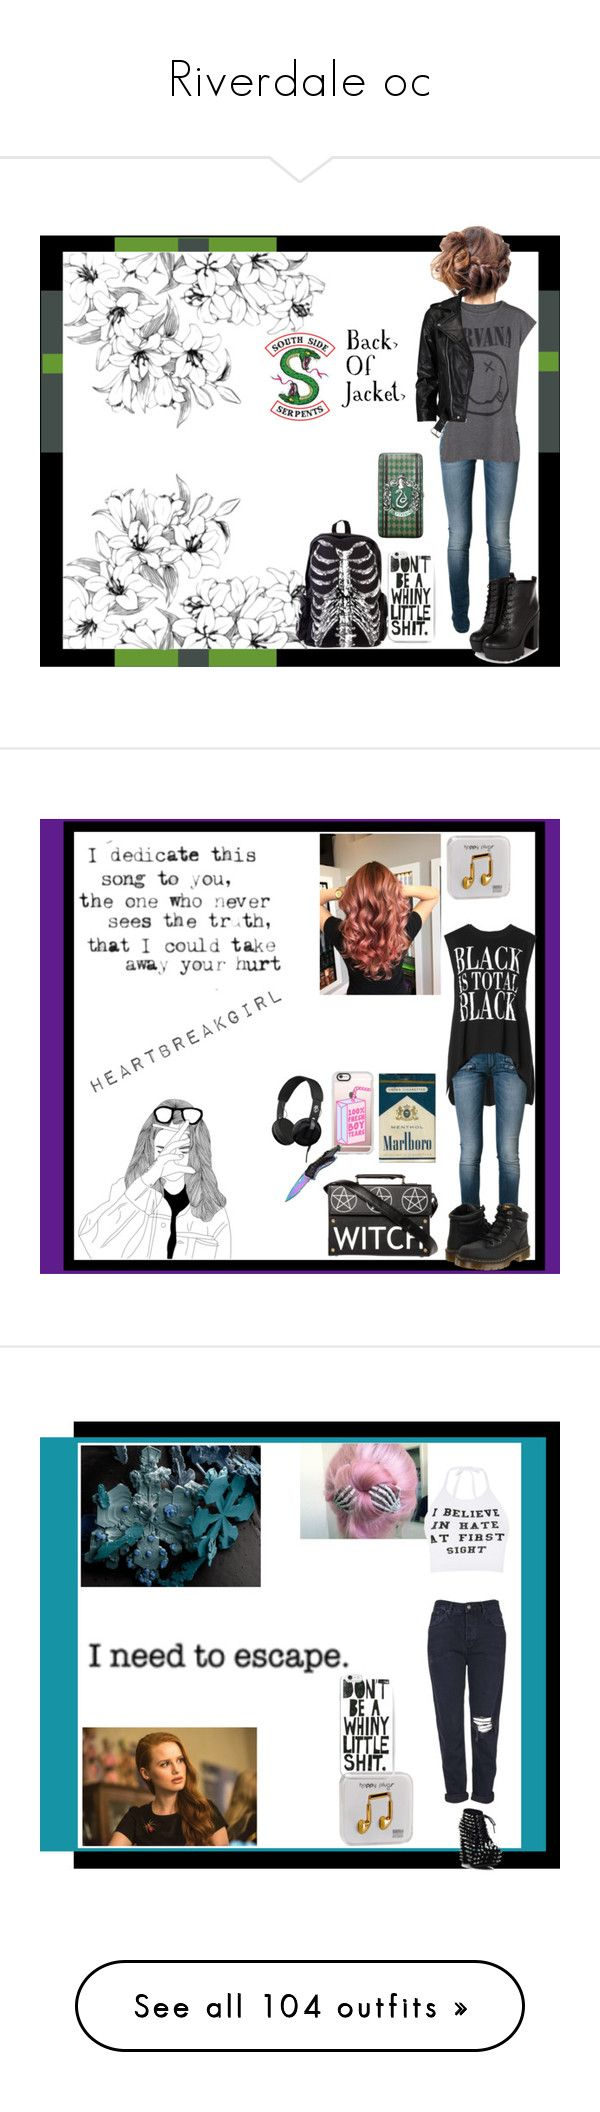 """Riverdale oc"" by thin-mint on Polyvore featuring Pierre Balmain, MANGO, VIPARO, Warner Bros., Happy Plugs, Casetify, Handle, Benetton, Dr. Martens and Skullcandy"